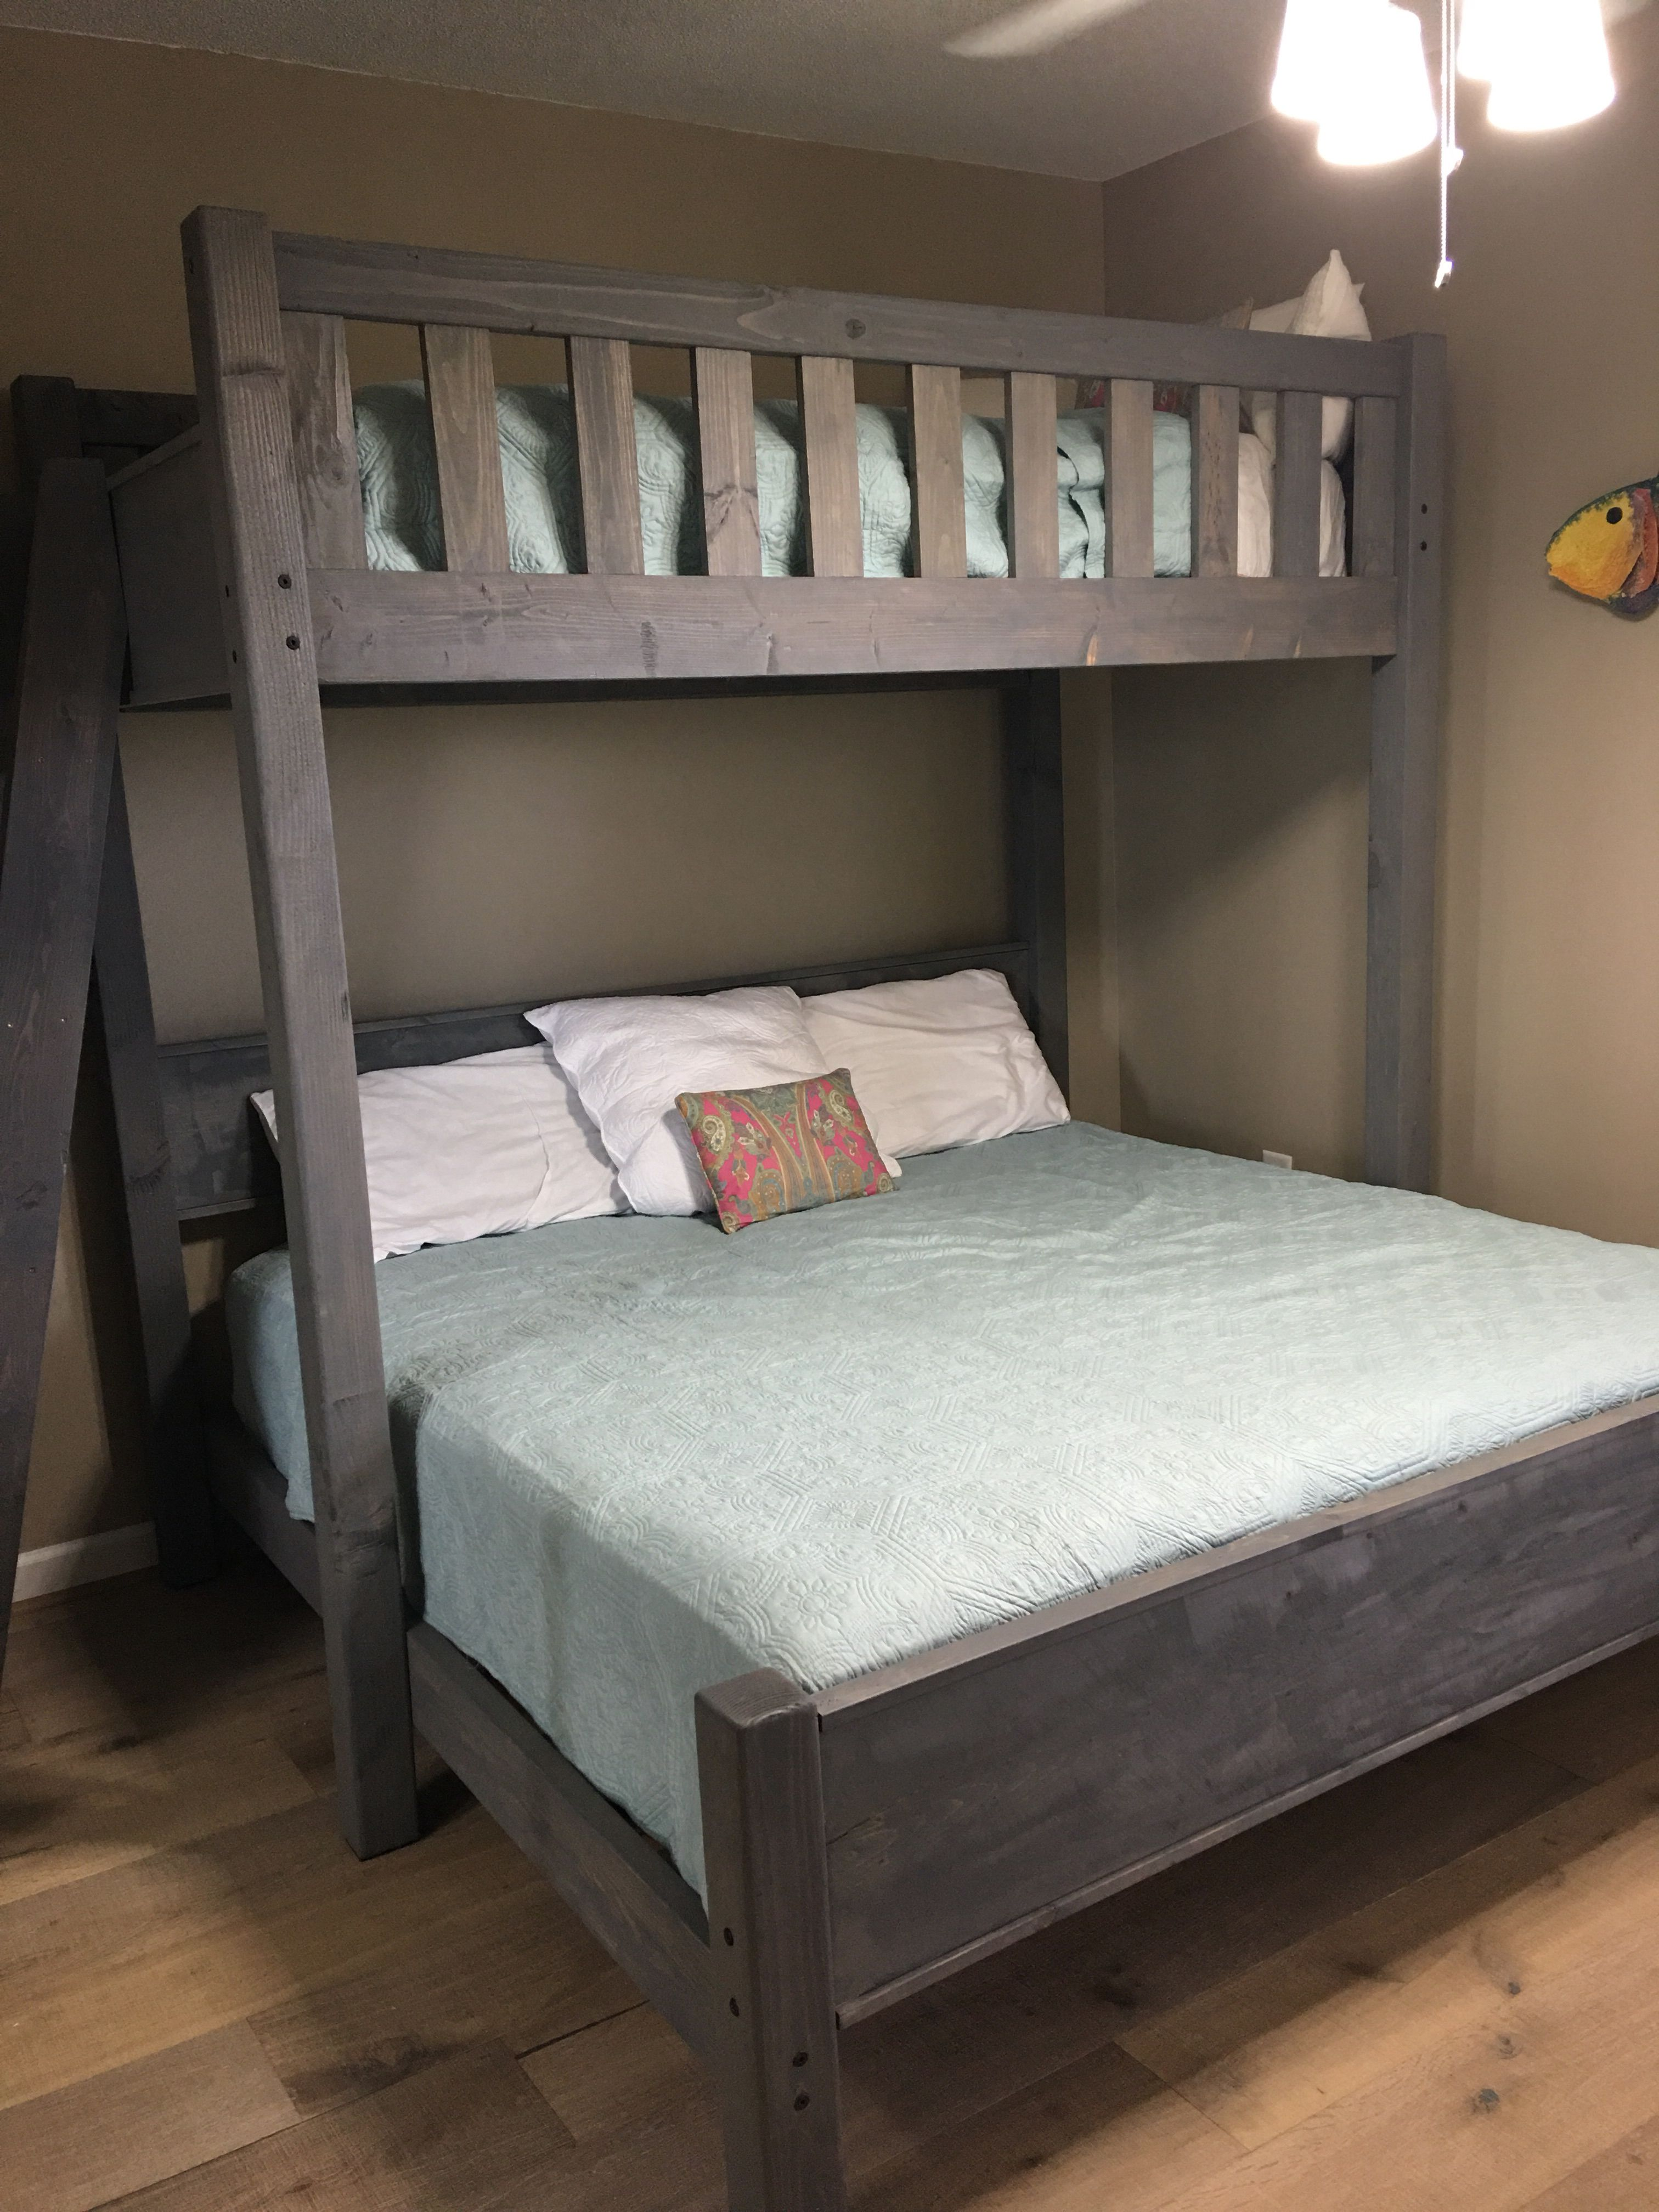 Full over king promontory bunk images